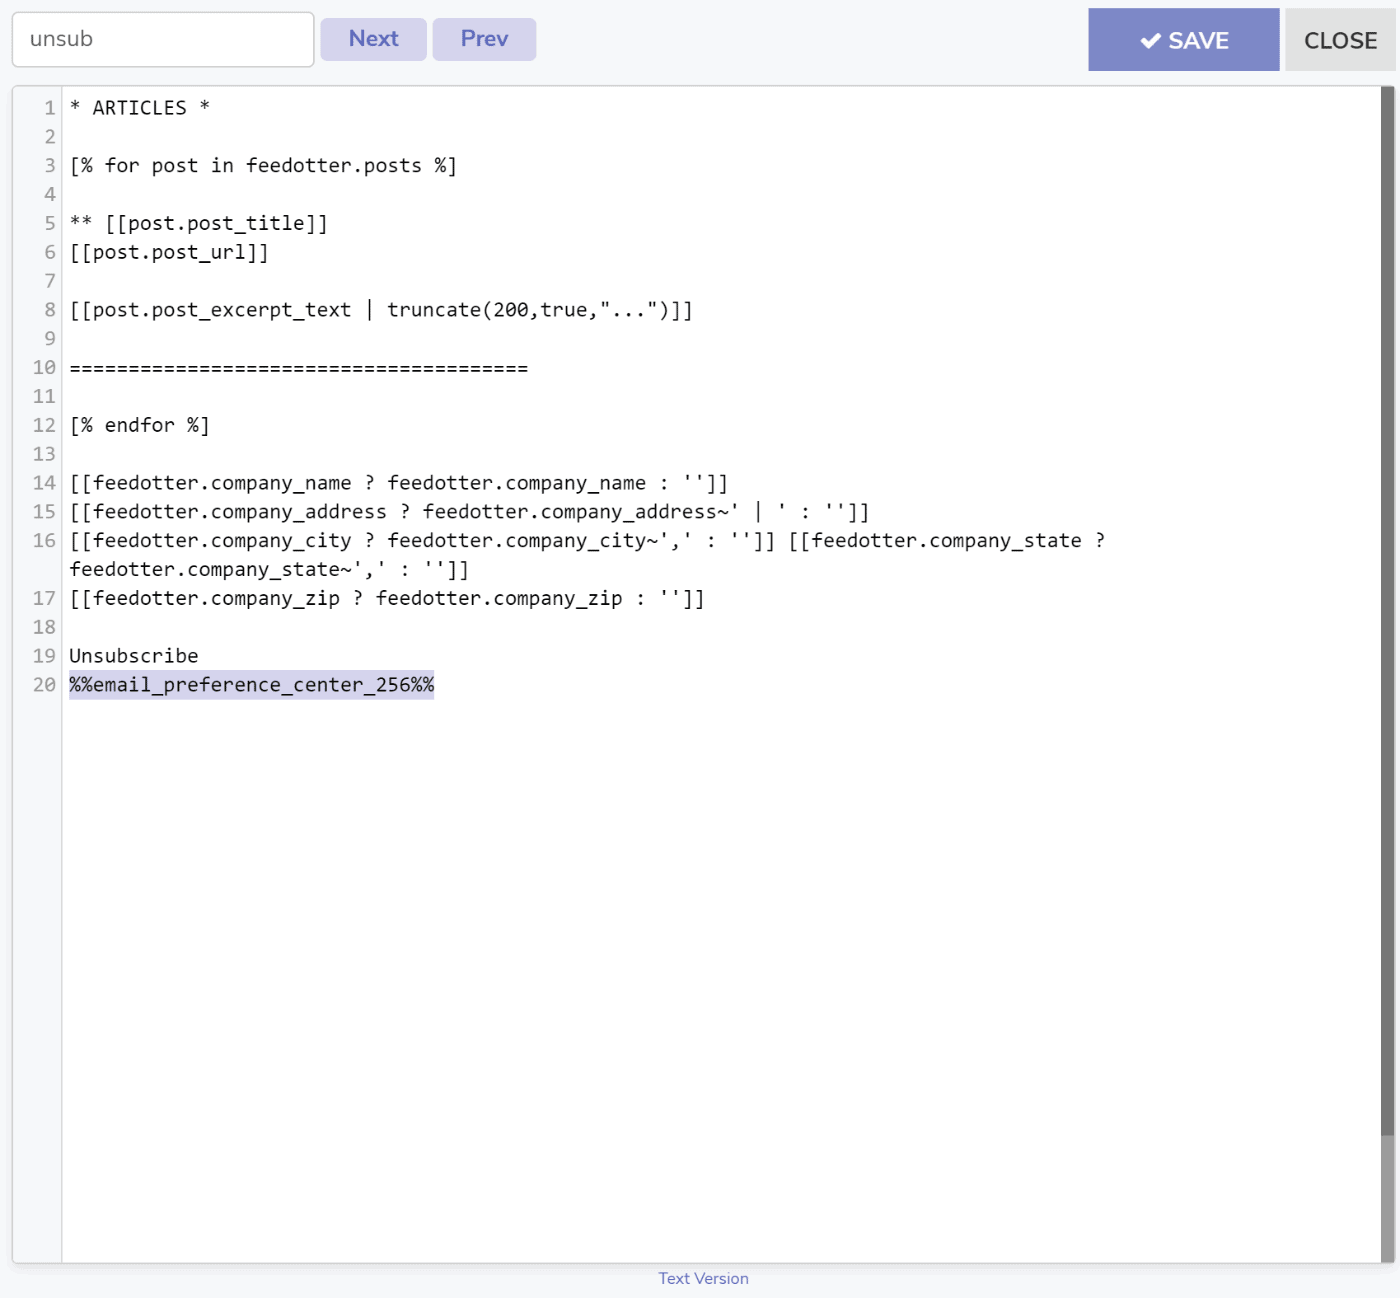 Text Version of your FeedOtter email